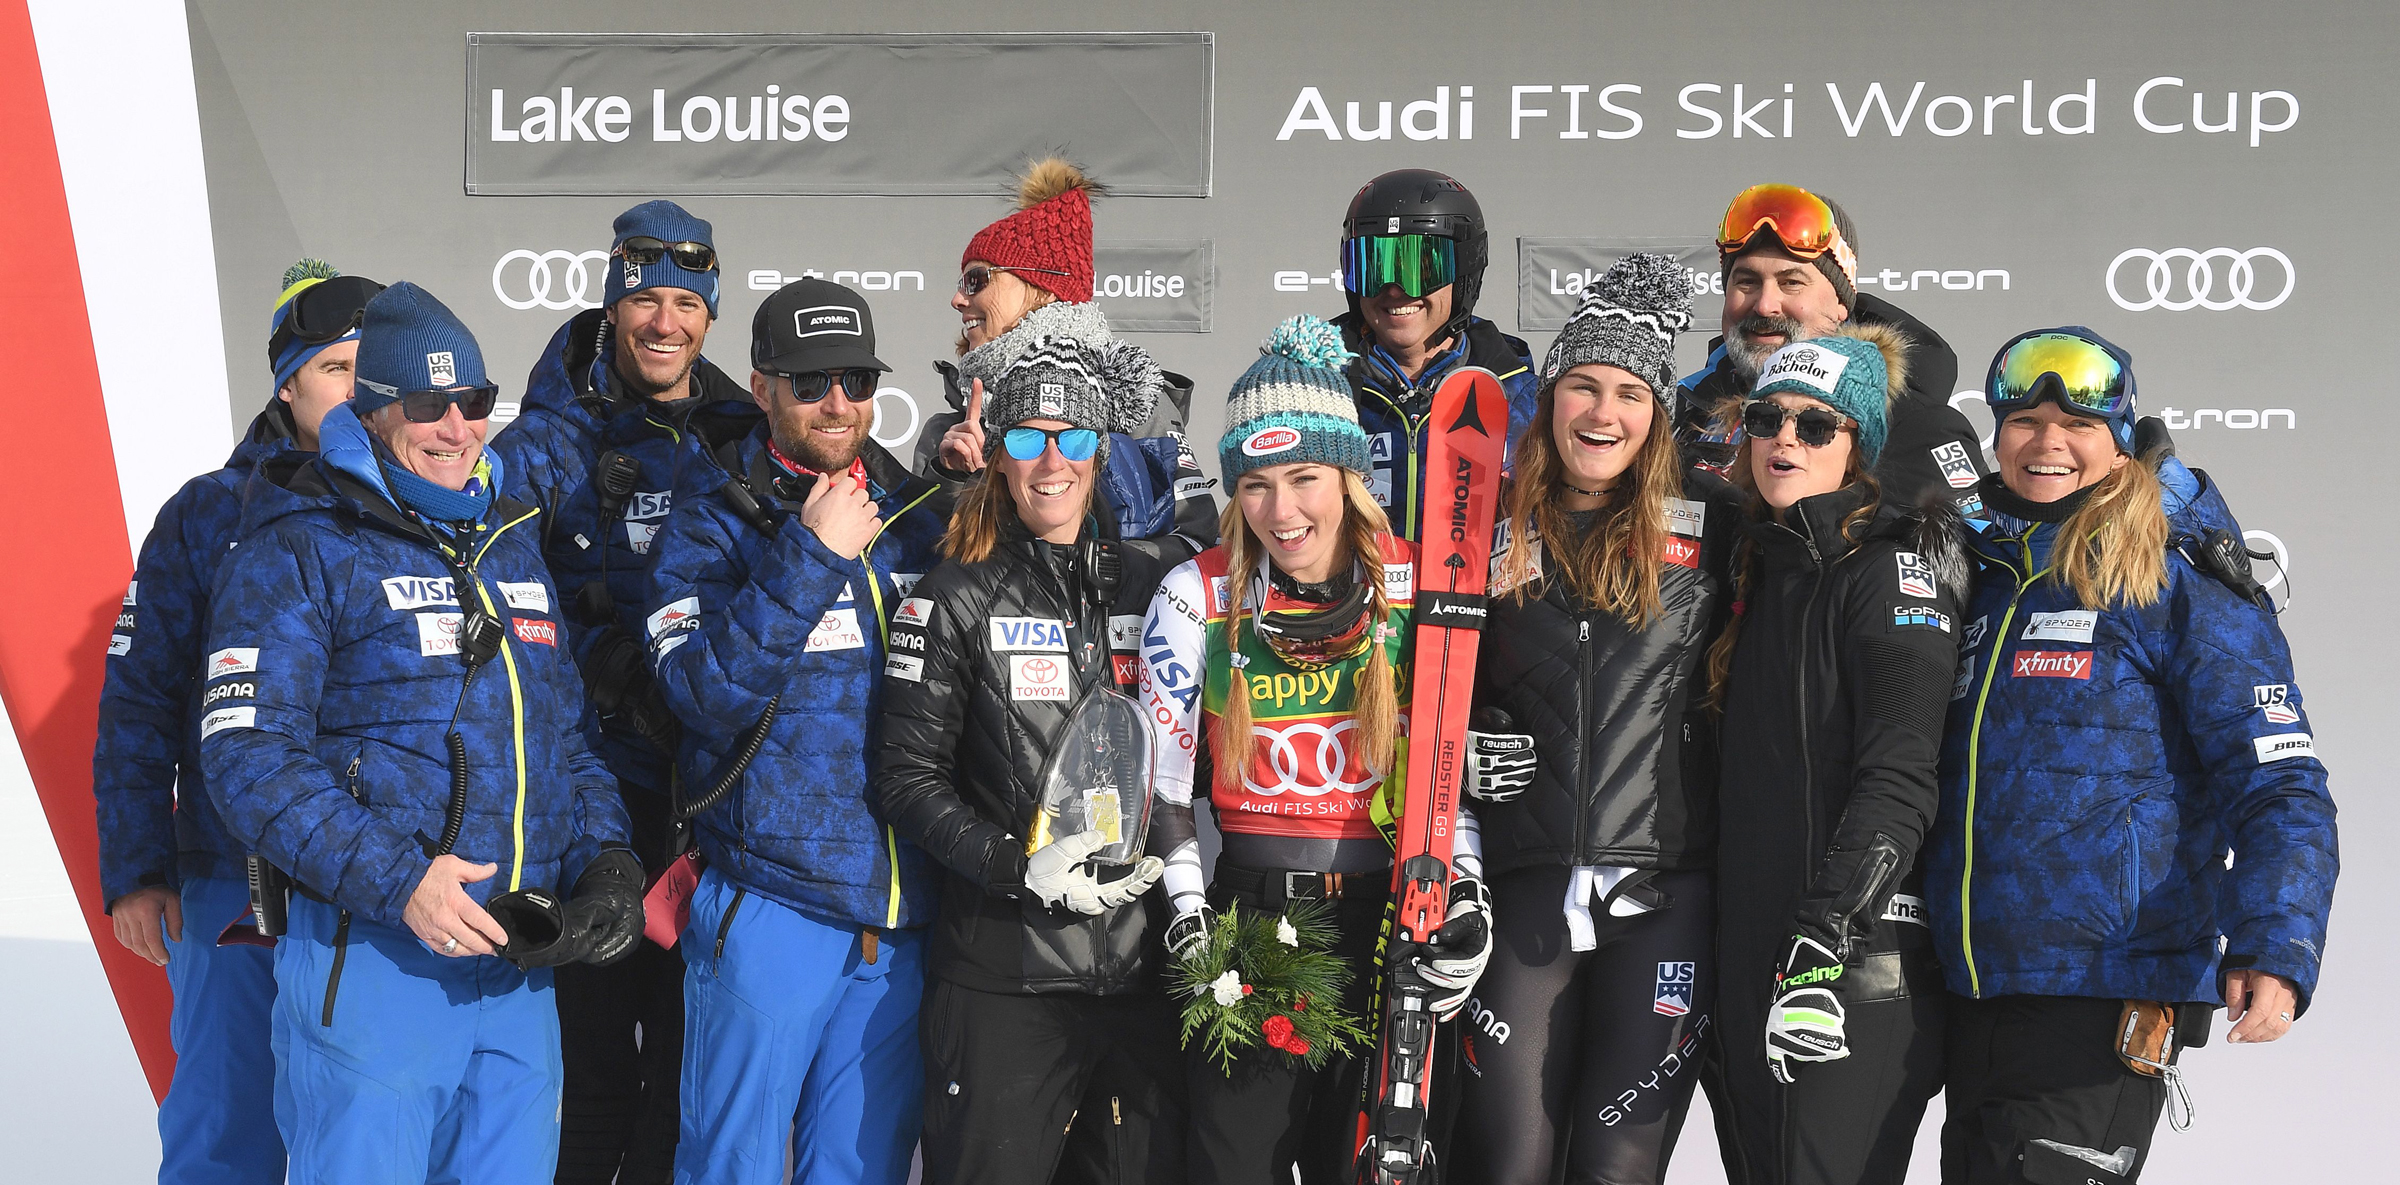 U.S. Team with Shiffrin